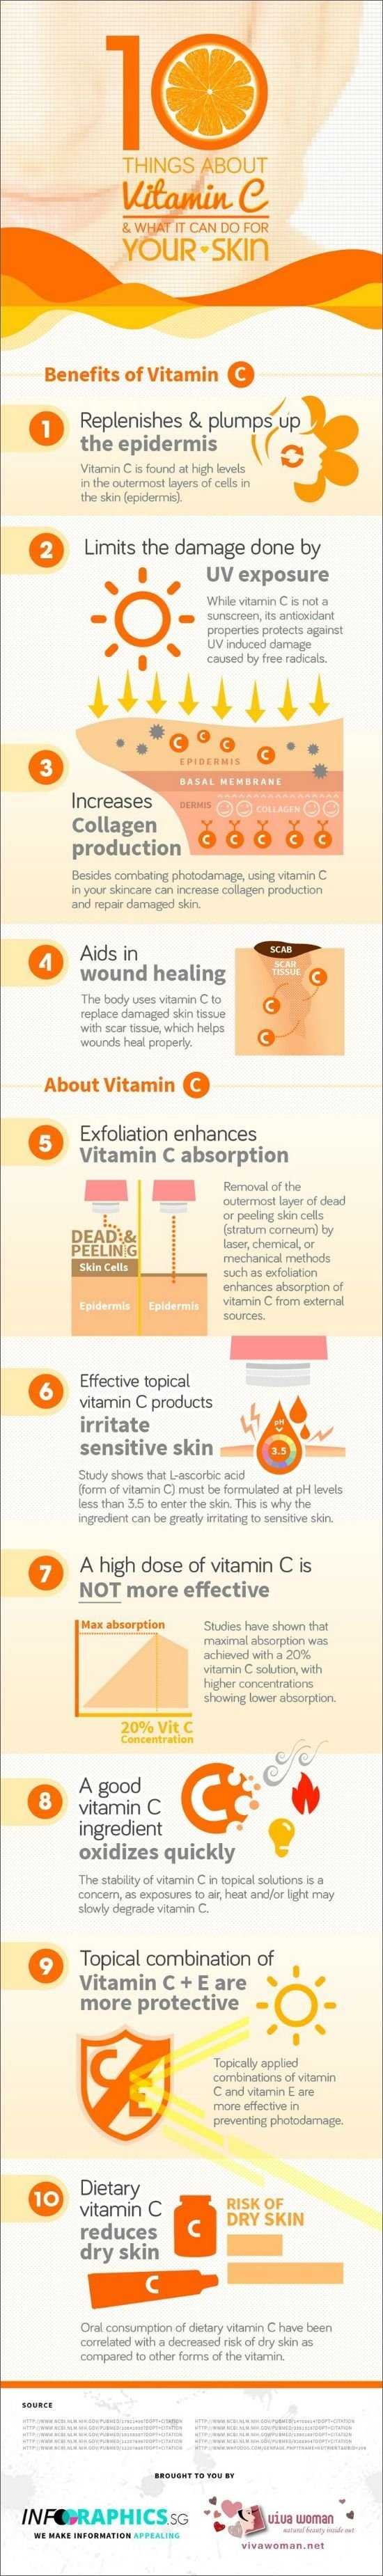 10 Things About Vitamin C For Your Skin